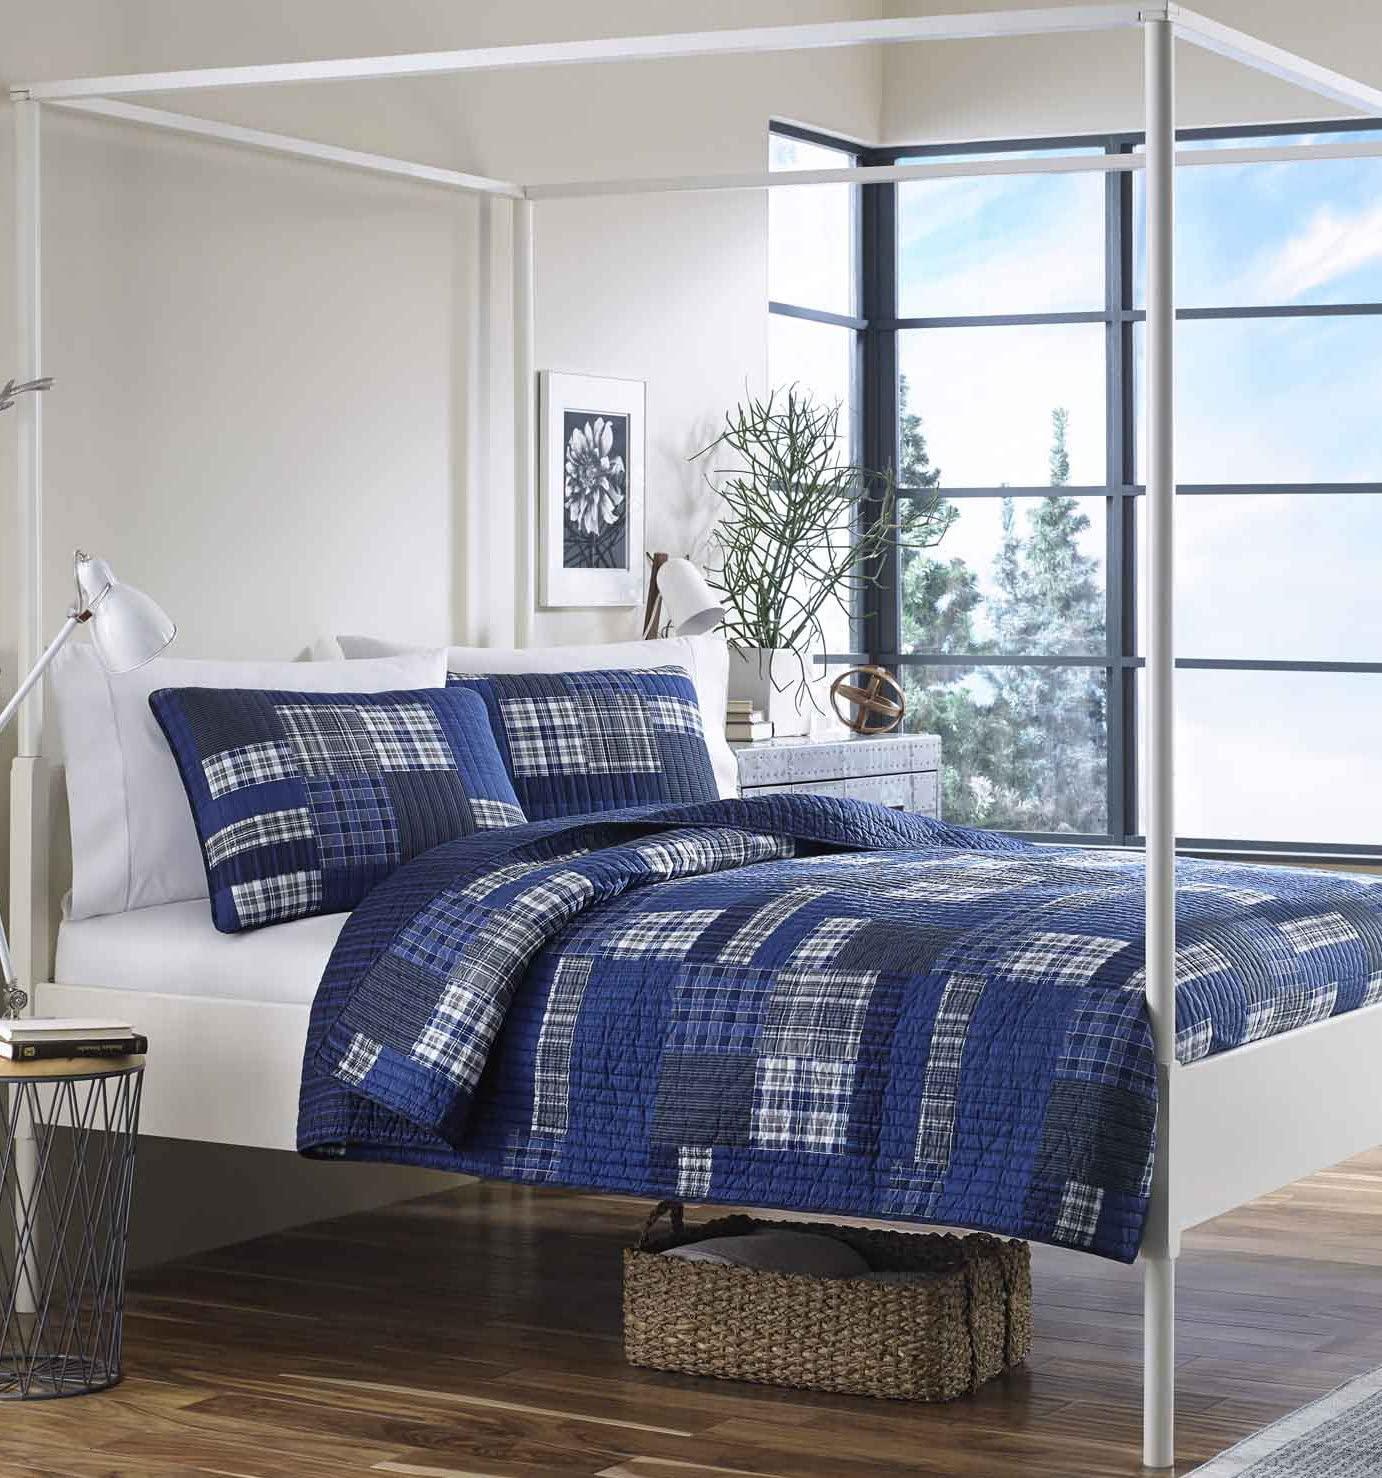 Eddie Bauer Home   Eastmont Collection   100% Cotton Reversible & Light-Weight Quilt Bedspread with Matching Shams, 3-Piece Bedding Set, Pre-Washed for Extra ComfortKingBlue